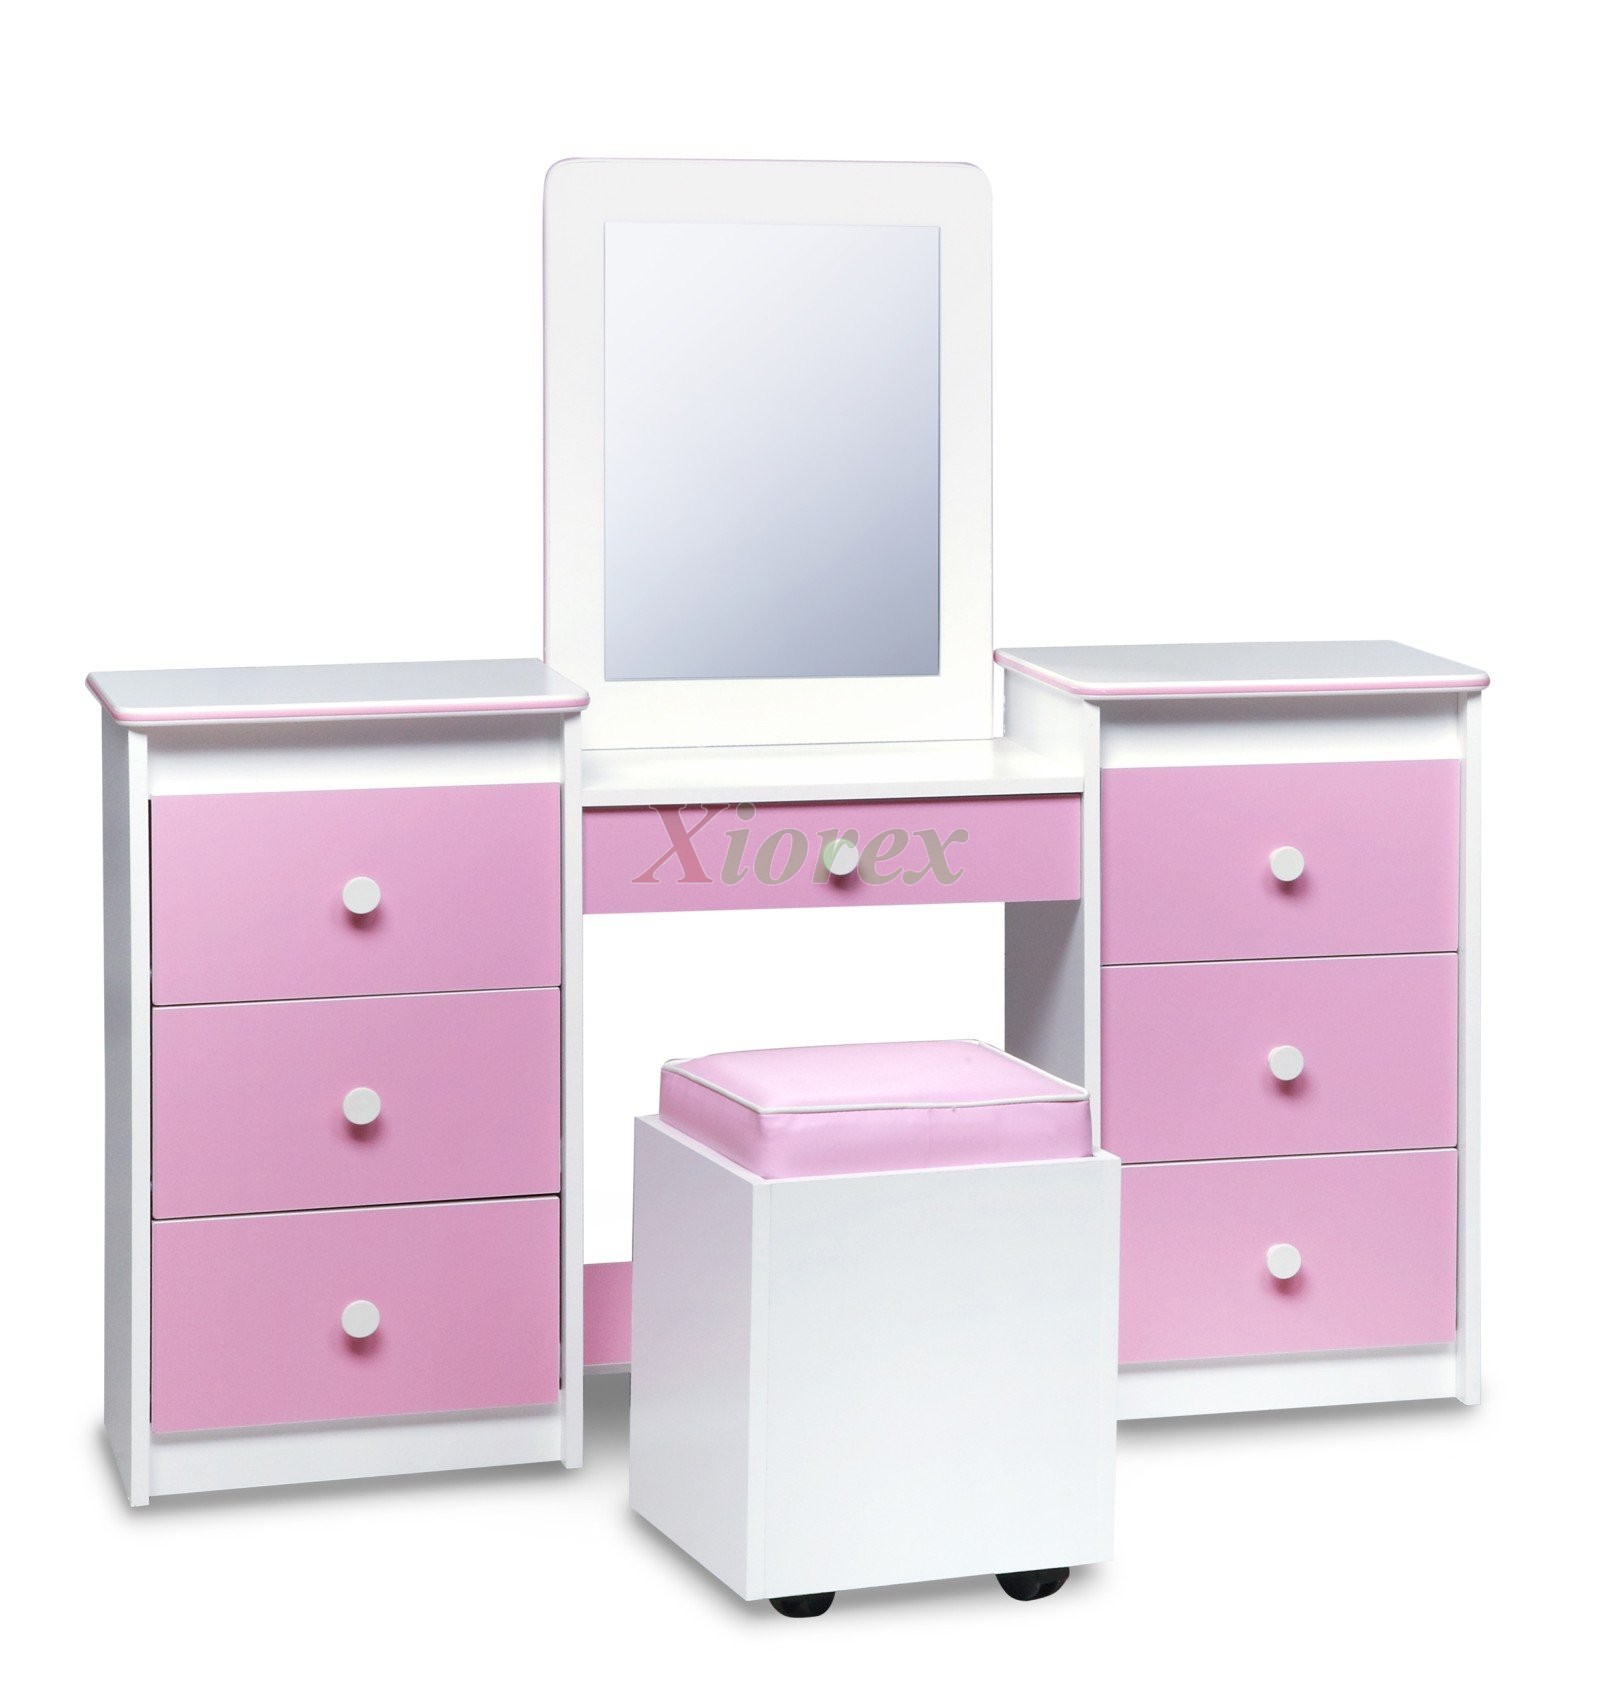 o vanity elsie desk pbteen classic desks products